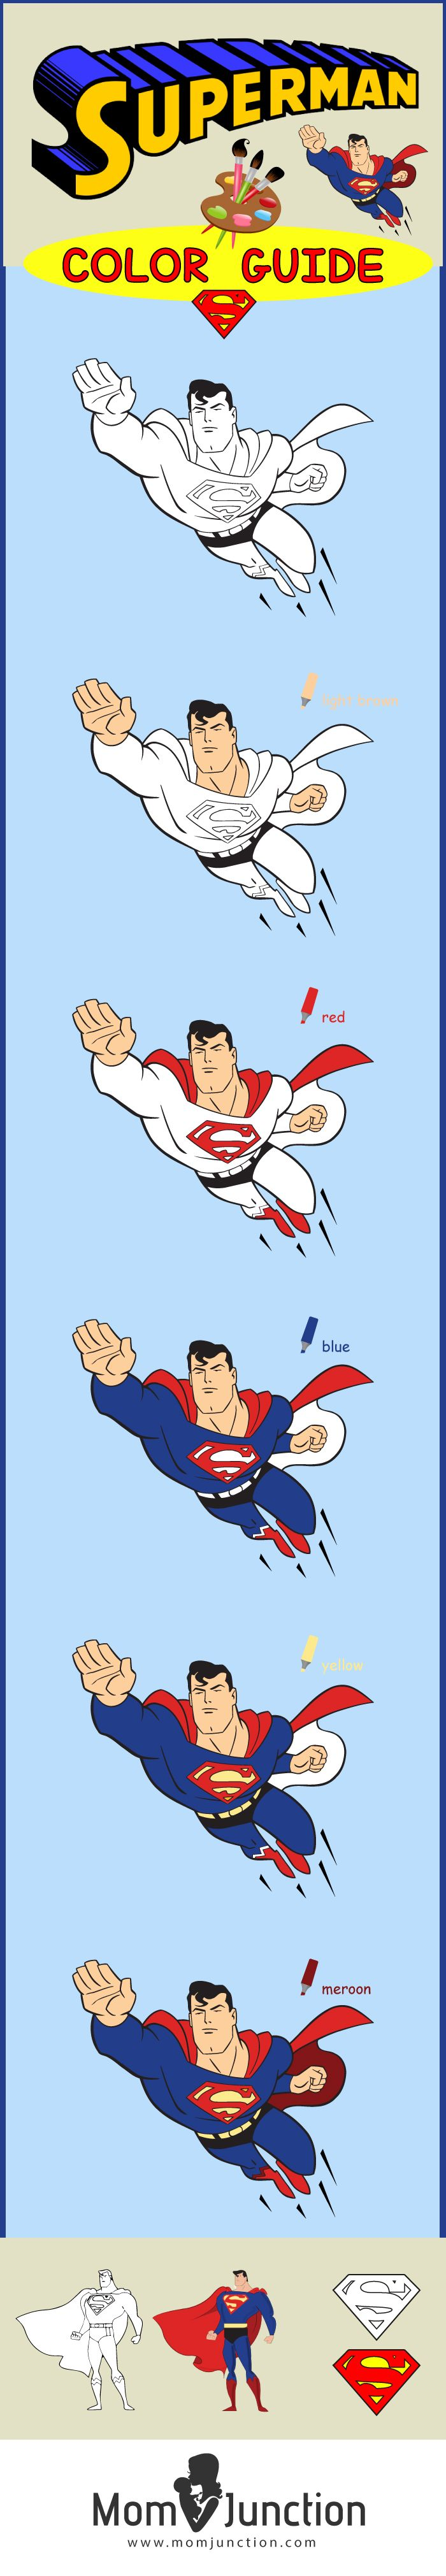 Superman coloring pages online - Top 30 Free Printable Superman Coloring Pages Online